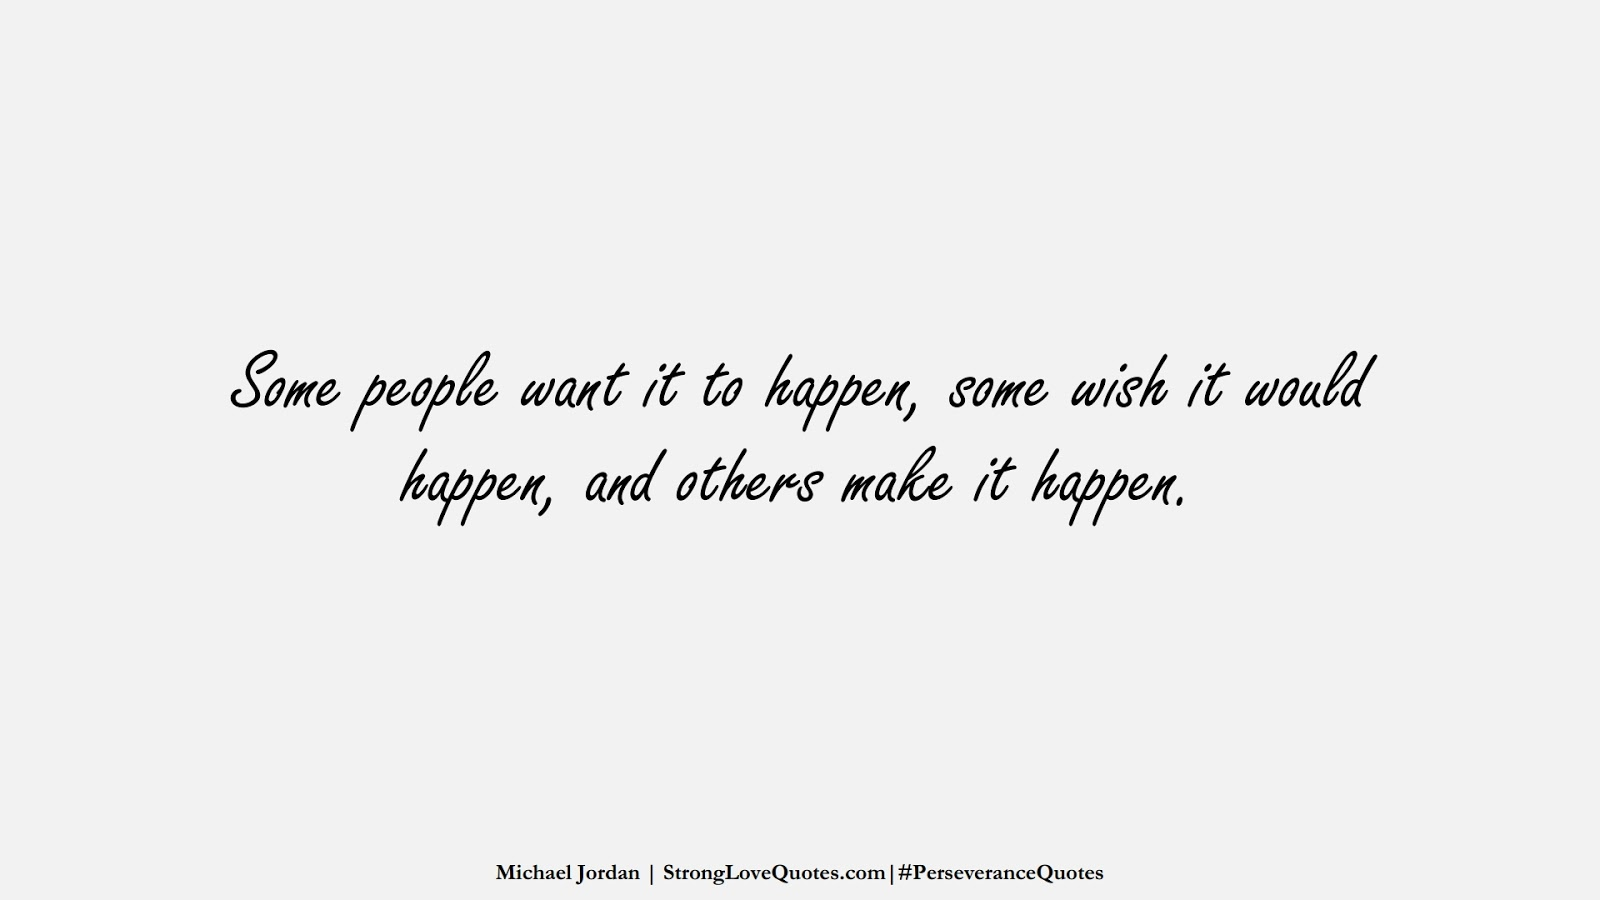 Some people want it to happen, some wish it would happen, and others make it happen. (Michael Jordan);  #PerseveranceQuotes